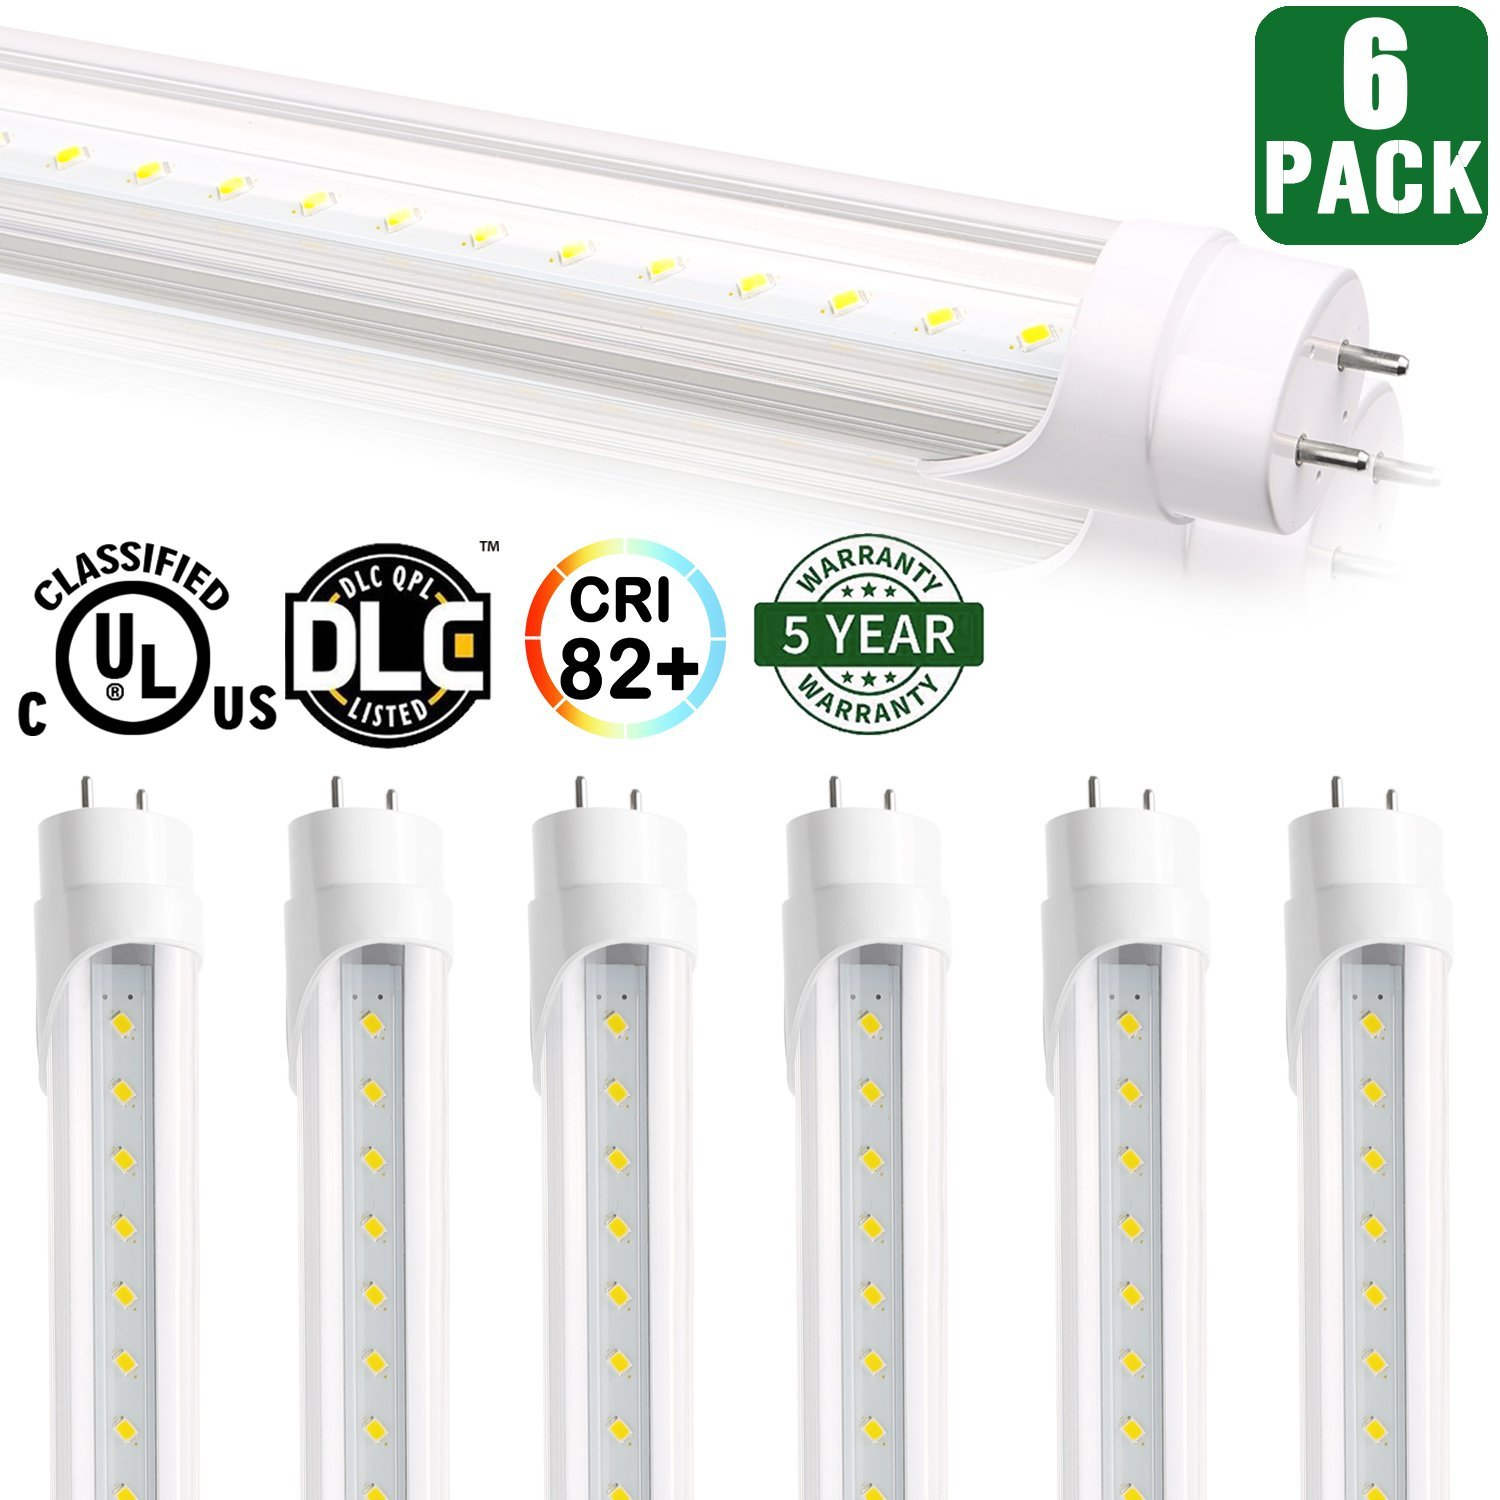 6 Pack - Hykolity T8 LED Tube Light 4FT 18W (40W Equivalent) Shop Lights, 2160LM, 5000K, Works WITH or without a Ballast, UL Listed and DLC Qualified, T10 T12 Fluorescent Tubes Replacement